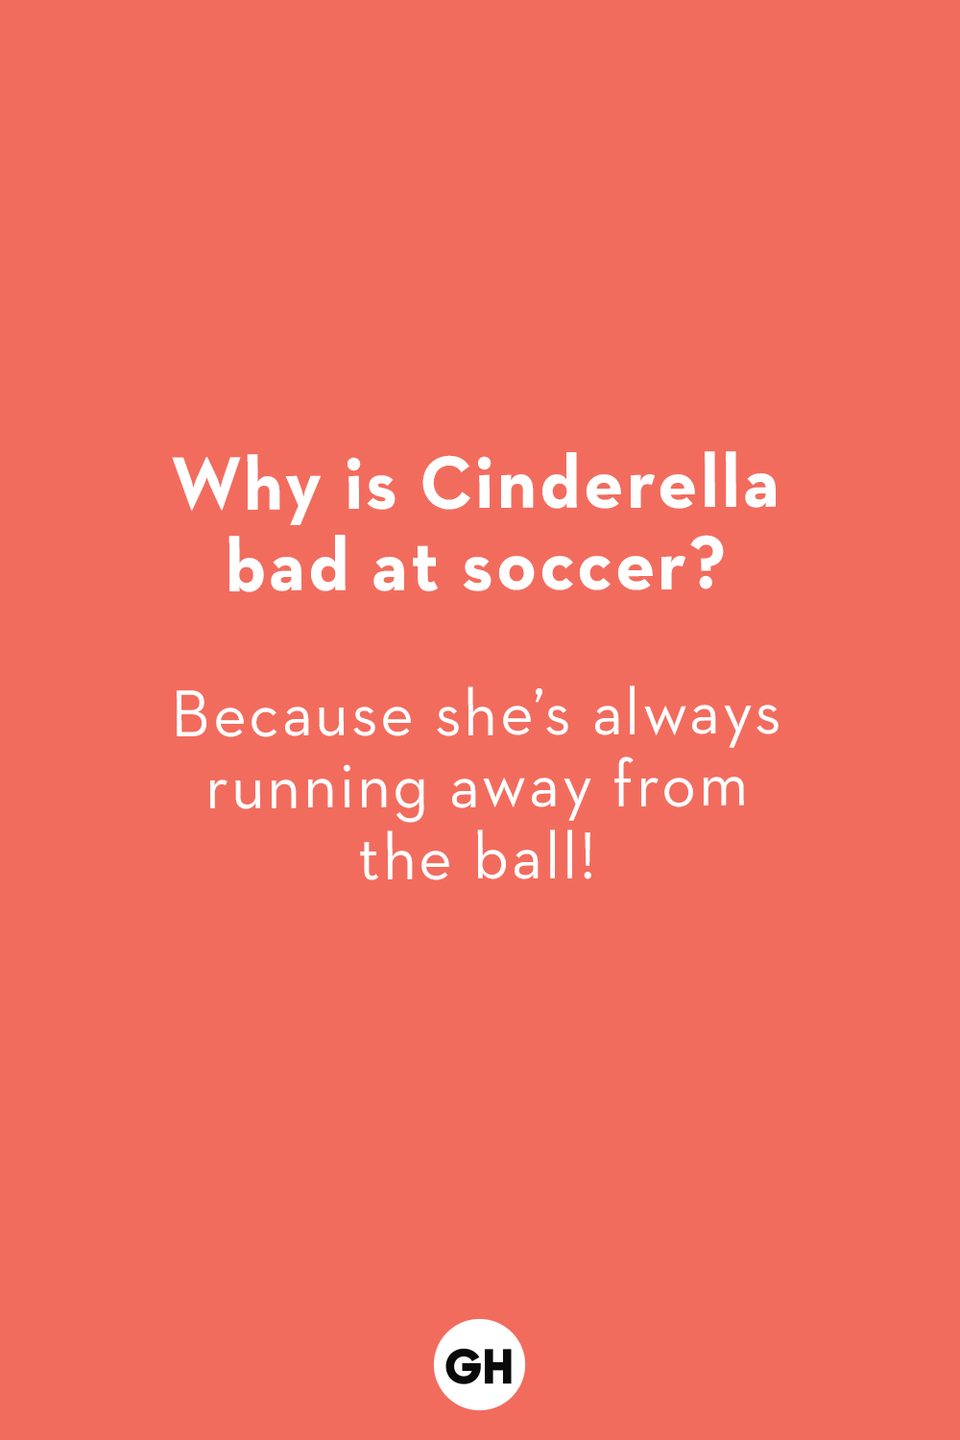 <p>Because she's always running away from the ball!</p>